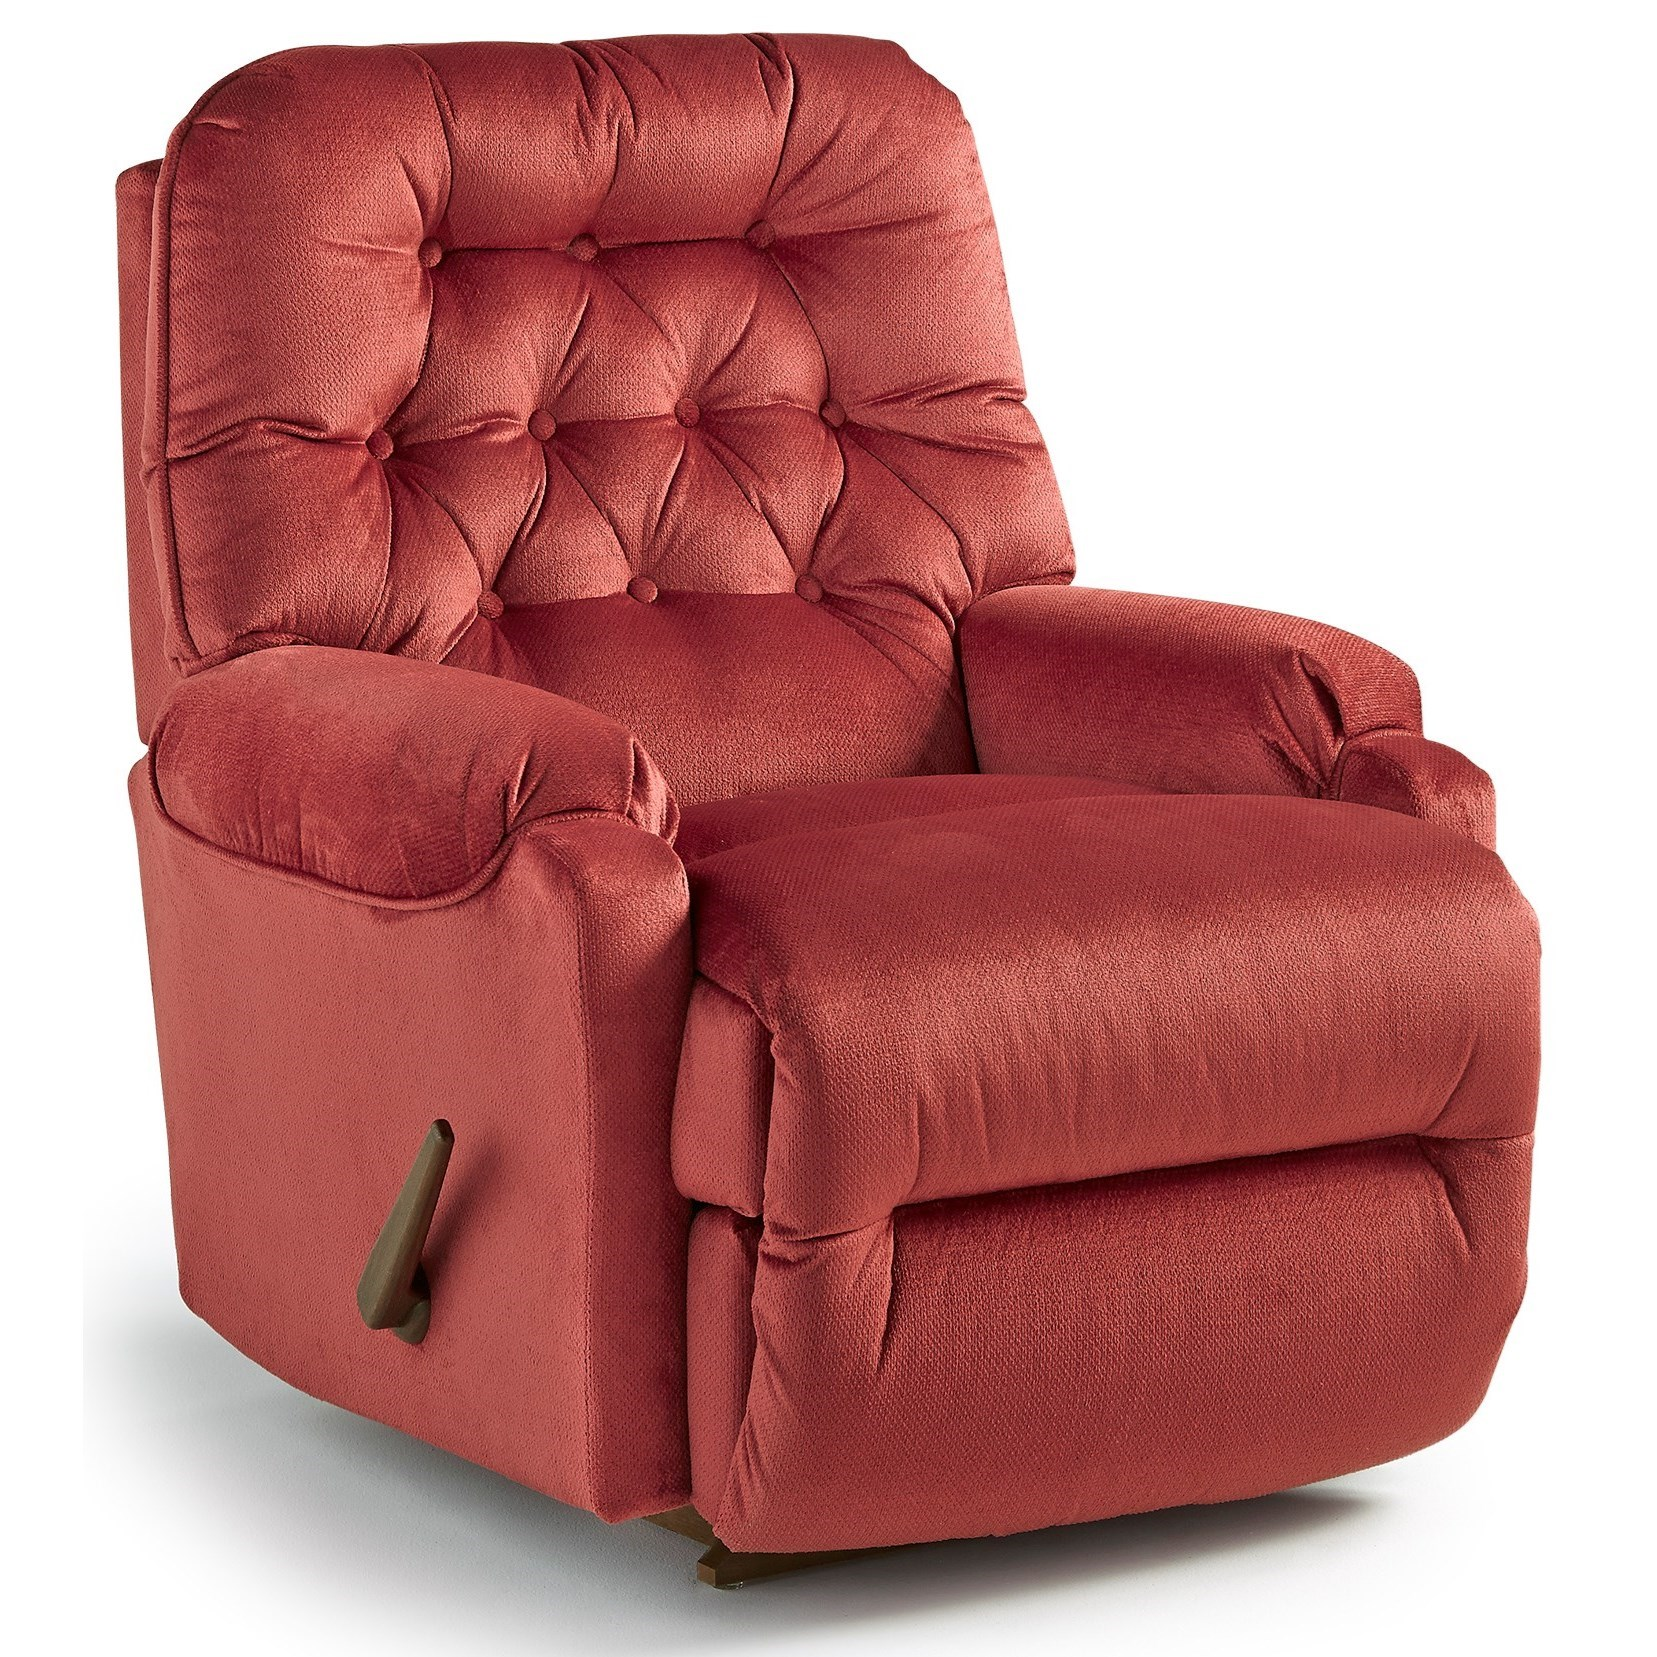 Best Home Furnishings Petite Recliners 9aw29 Brena Swivel